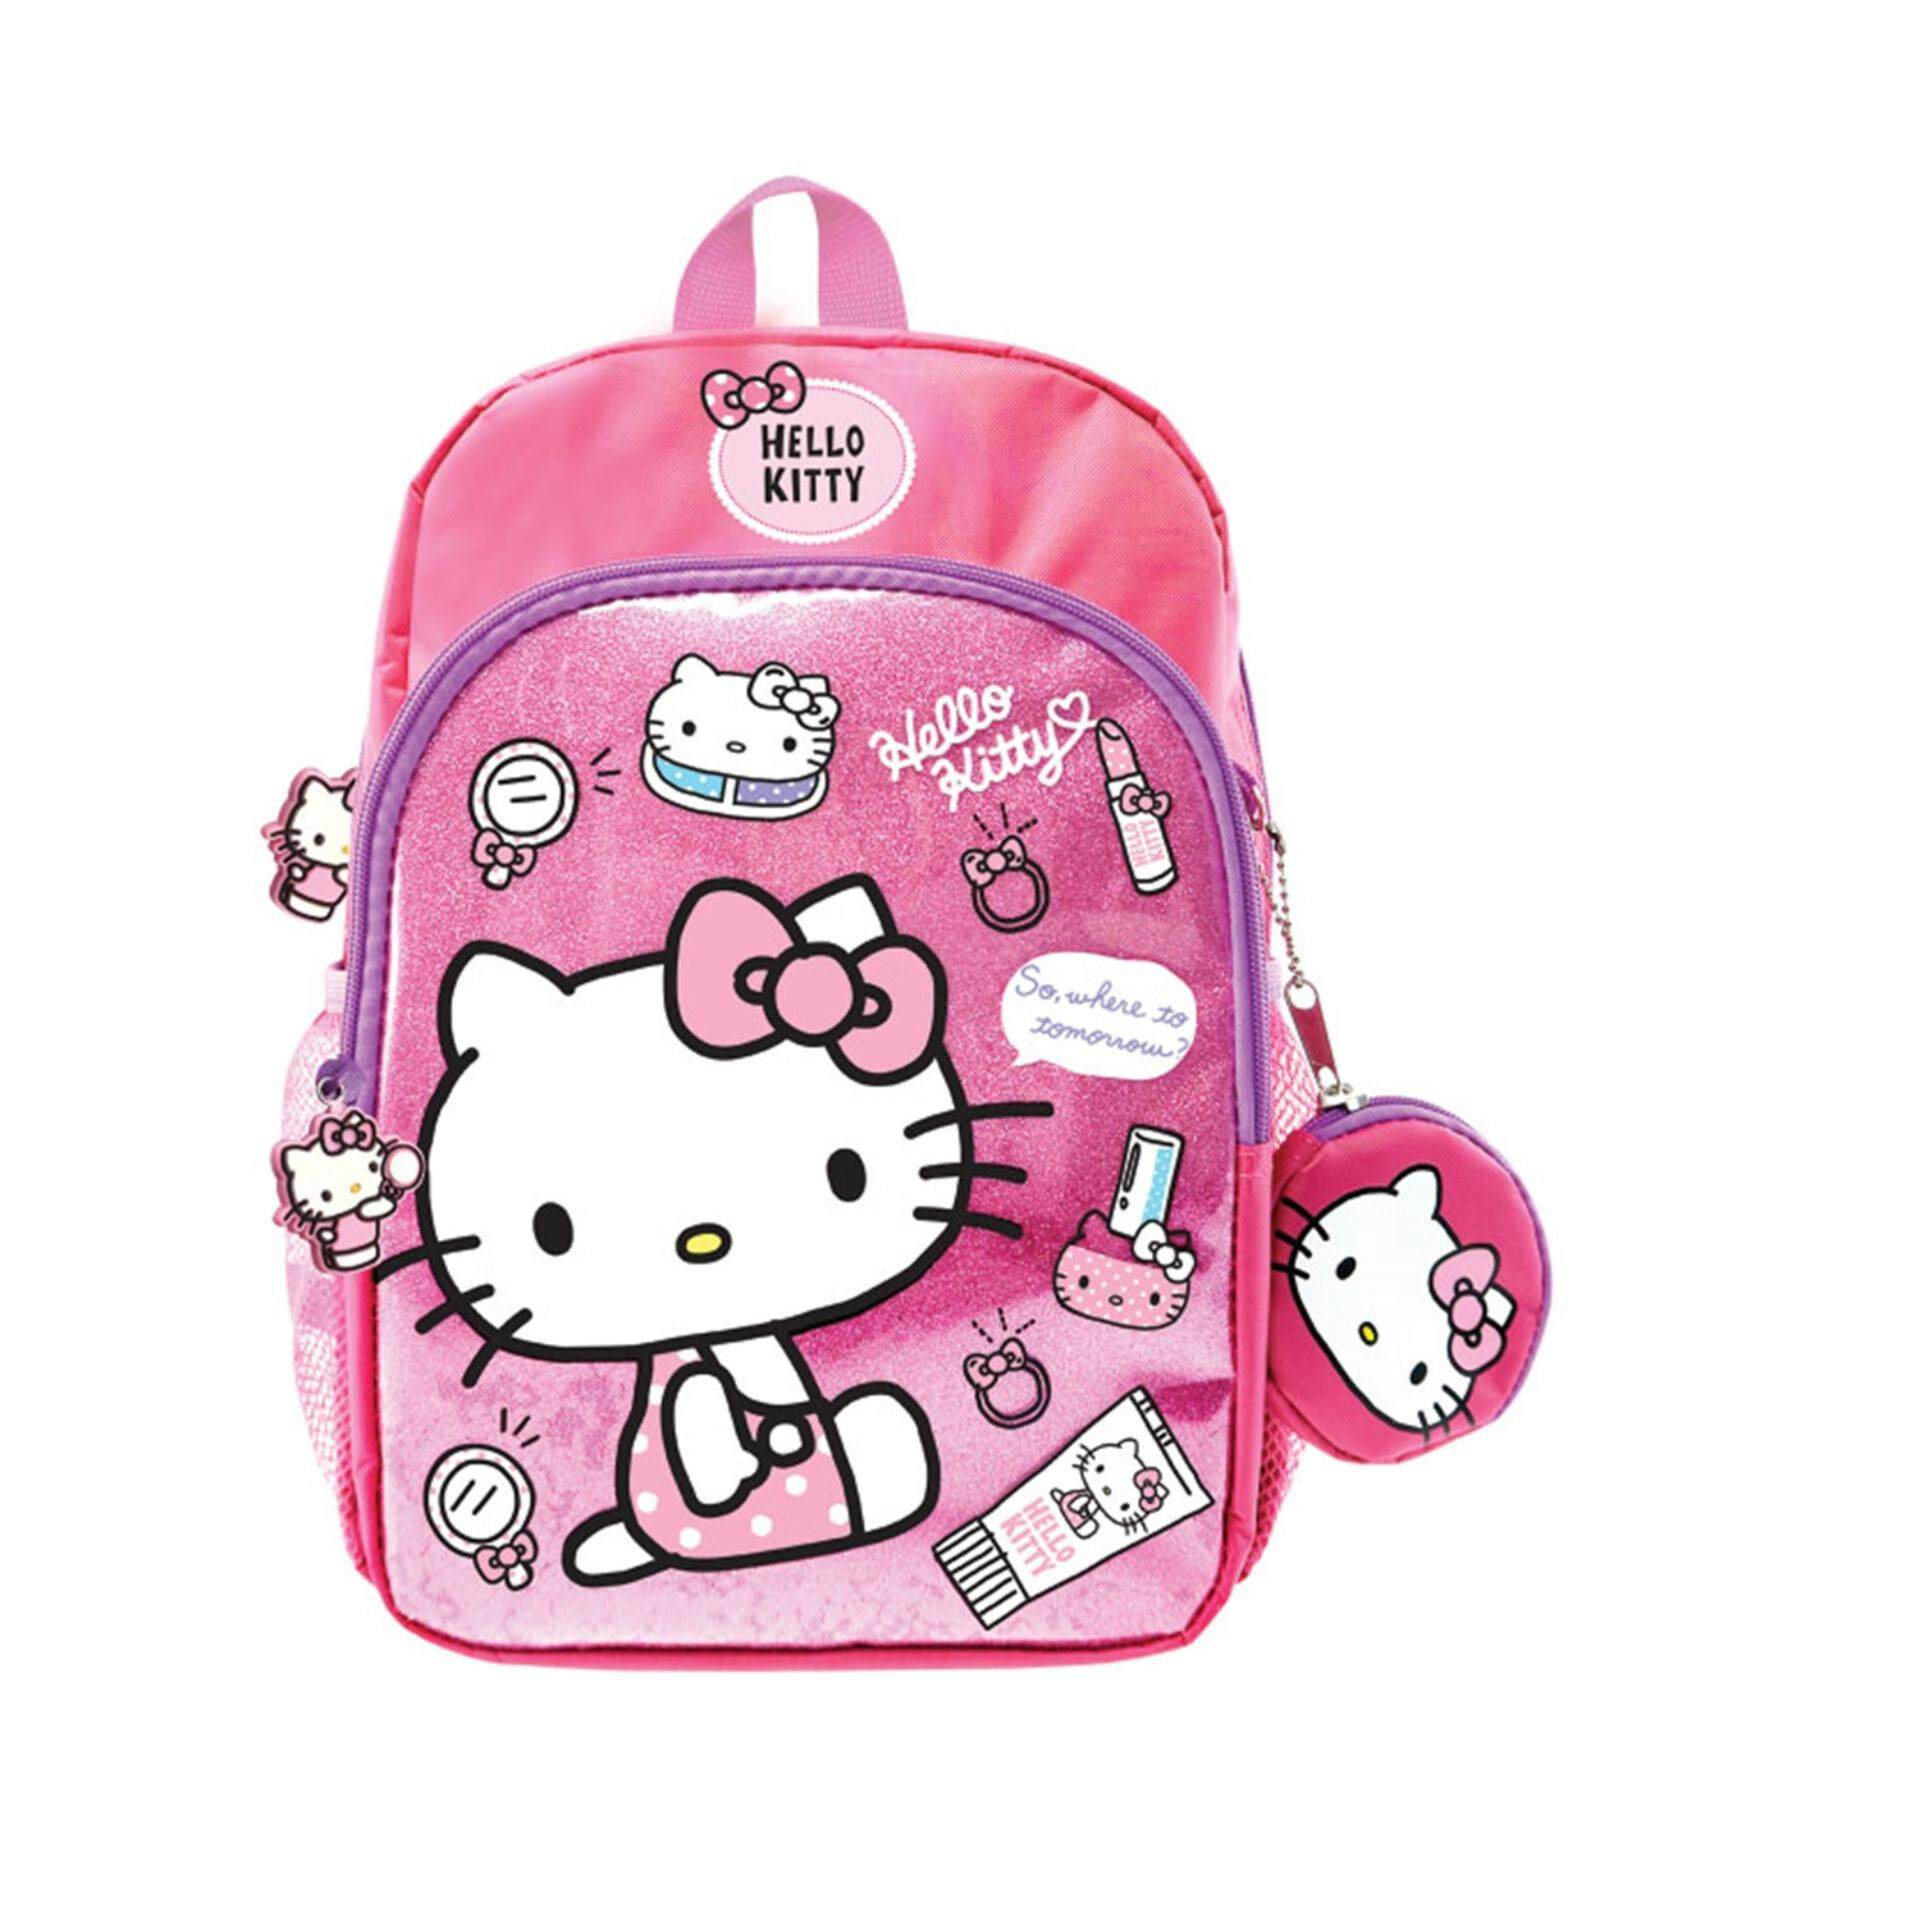 Sanrio Hello Kitty Small Backpack 12 Inches - Pink Colour